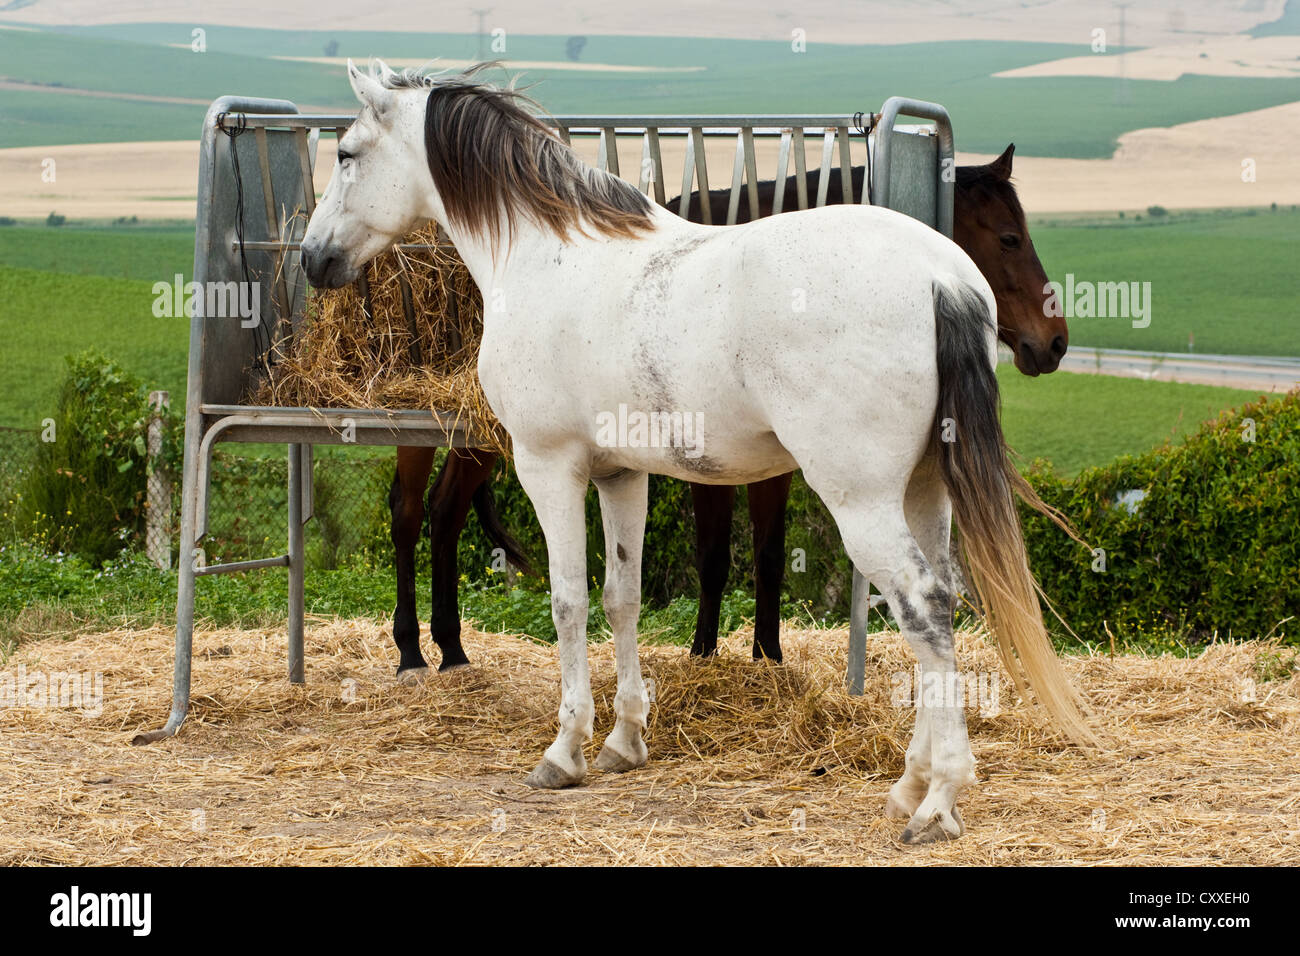 Lusitanos, grey and brown horse eating from hay rack, Andalucia, Spain, Europe - Stock Image